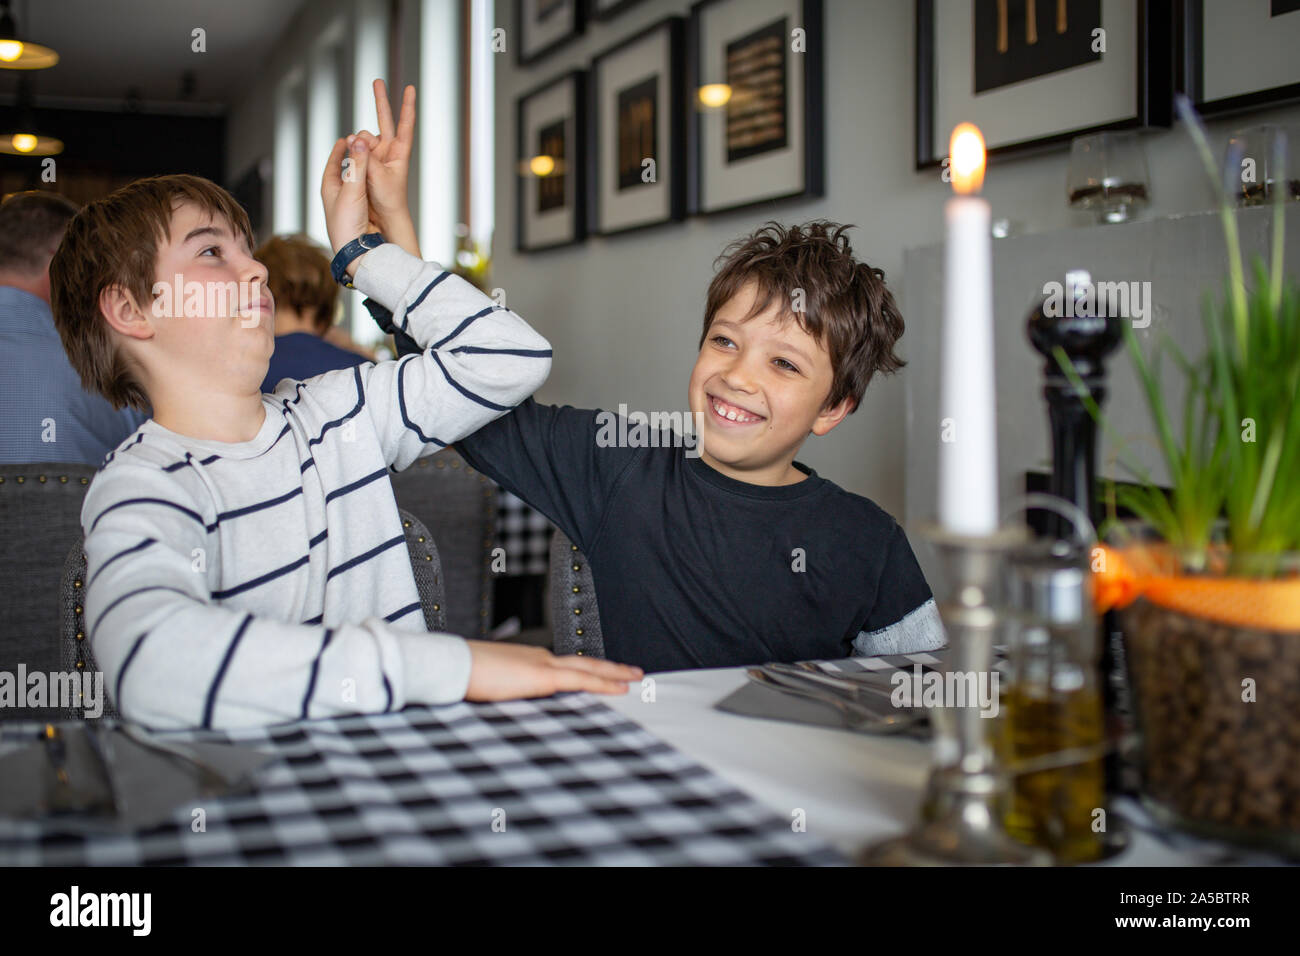 Two boys waiting for pizza in a restaurant.  - brothers having fun. Stock Photo